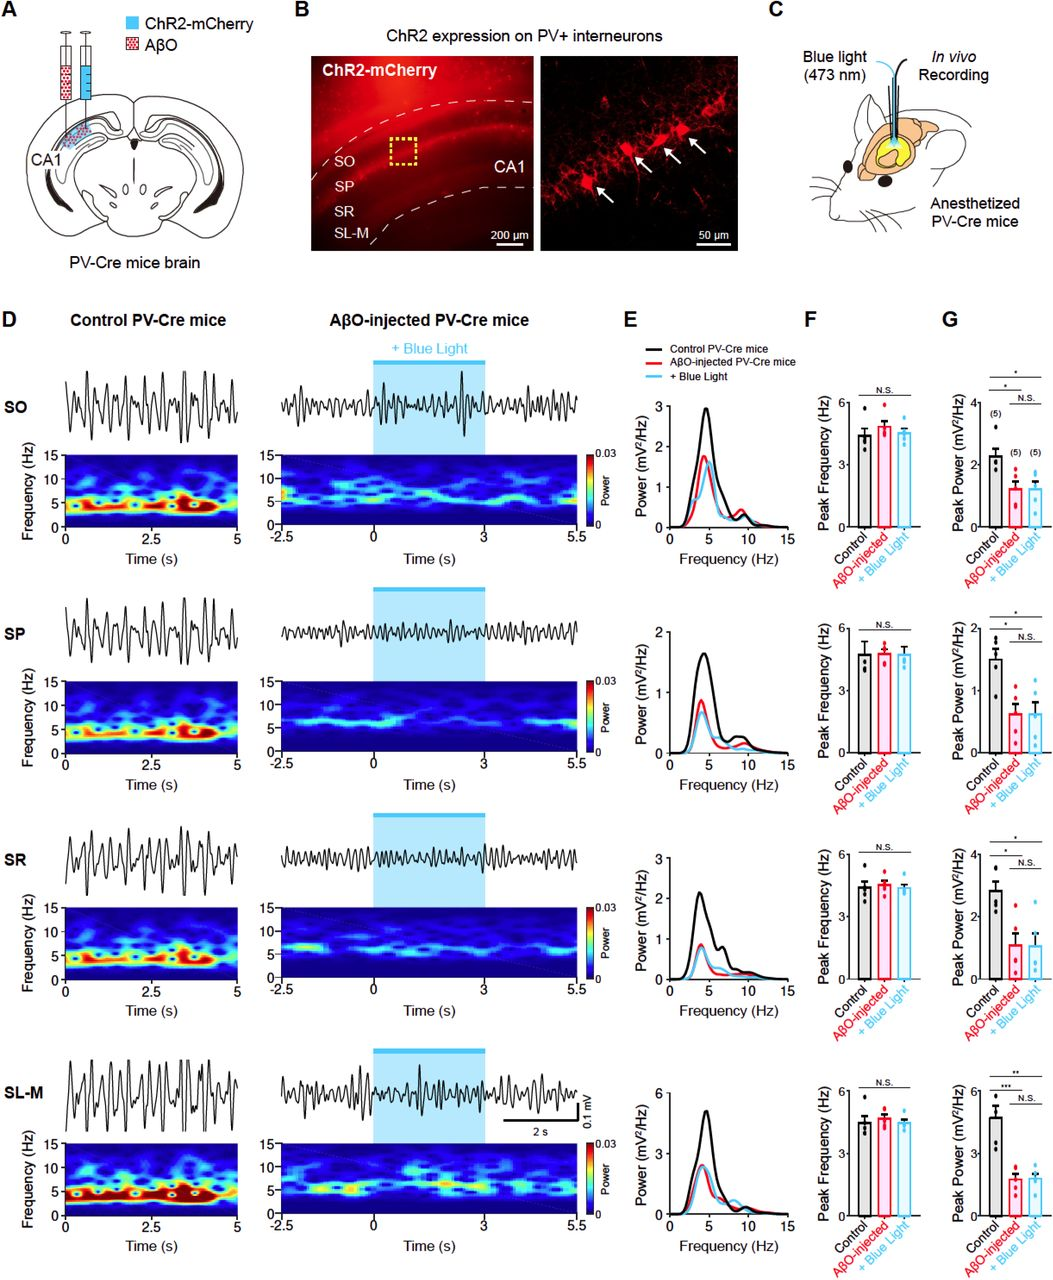 Optogenetic activation of PV+ interneurons had no effect on impaired theta oscillation of AβO-injected PV-Cre mice (A) Schematic illustration of micro-injection of AβO and ChR2 virus into hippocampal <t>CA1</t> region of PV-Cre mice. (B) Fluorescence image of ChR2 expressed PV+ interneurons in hippocampal CA1 region. Individual neurons are pointed by white arrows. (C) Schematic illustration of in vivo recording. (D) Example traces of spontaneous theta-filtered LFP signals (top) and spectrogram (bottom) recorded in control PV-Cre mice (left) and AβO-injected PV-Cre mice (right). The 3 s-long blue light stimulation of PV+ interneuron s is represented by light blue shaded region. (E) Example traces of PSD curves obtained from the spontaneous theta oscillation recorded in control PV-Cre mice (black), AβO-injected PV-Cre mice (red) and AβO-injected PV-Cre mice with blue light (blue). (F-G) Mean peak frequency (F) and mean peak power (G) of spontaneous theta-filtered LFP signals of control PV-Cre mice (black, n = 5), AβO-injected PV-Cre mice (red, n = 5) and AβO-injected PV-Cre mice with blue light (blue, n = 5). All data represent mean ± SEM. Inset: N.S. p > 0.05, ∗ p